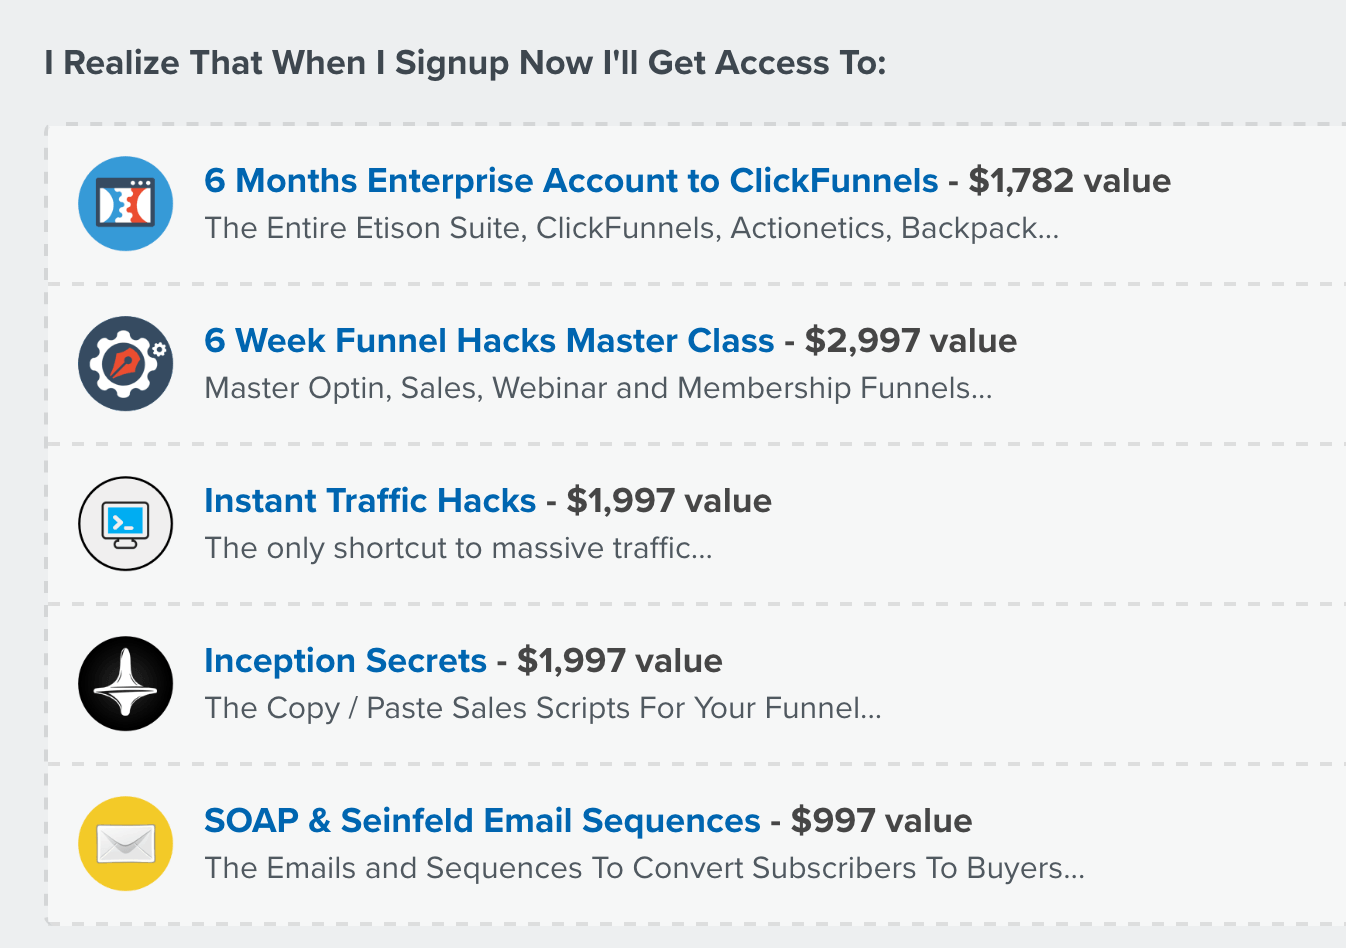 What Does Clickfunnels Do